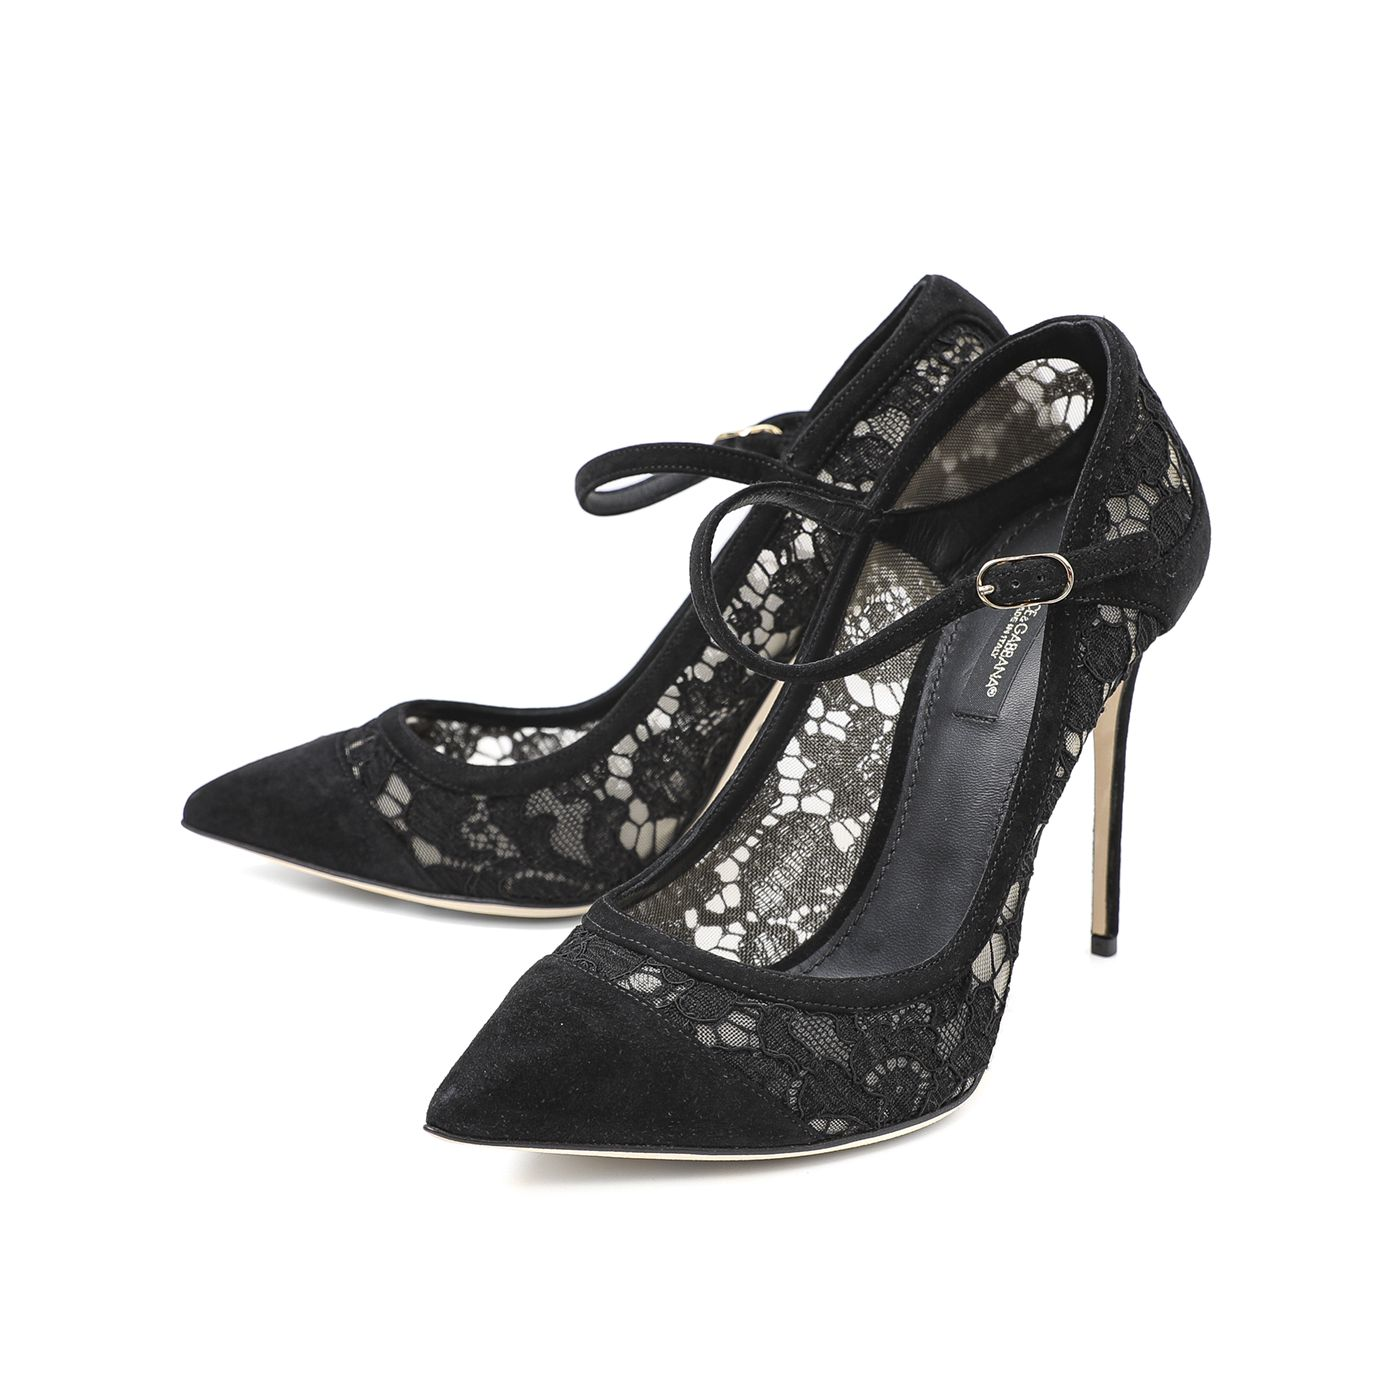 Dolce & Gabbana Black Bellucci Mary Jane Pumps 38